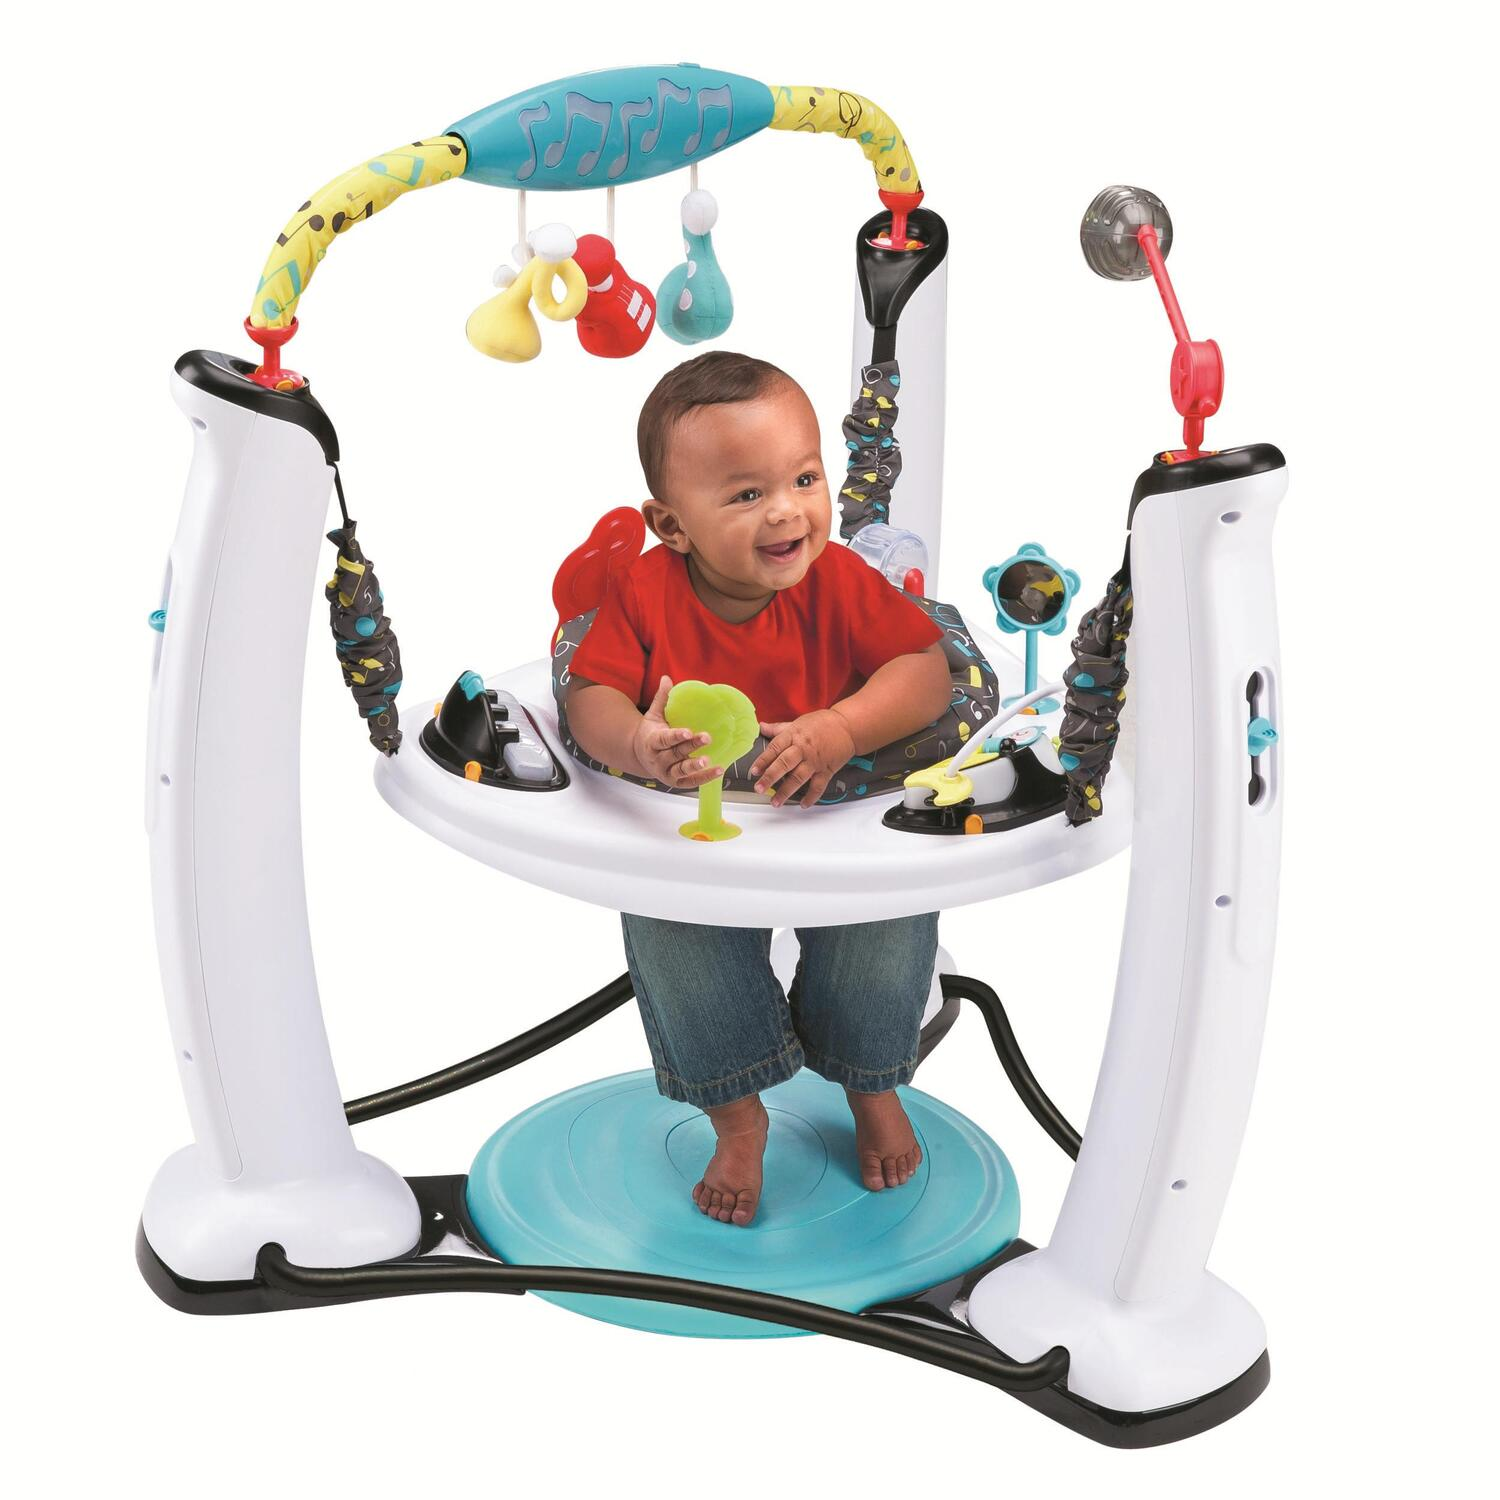 Evenflo Exersaucer 174 Jump Amp Learn Stationary Jumper By Oj